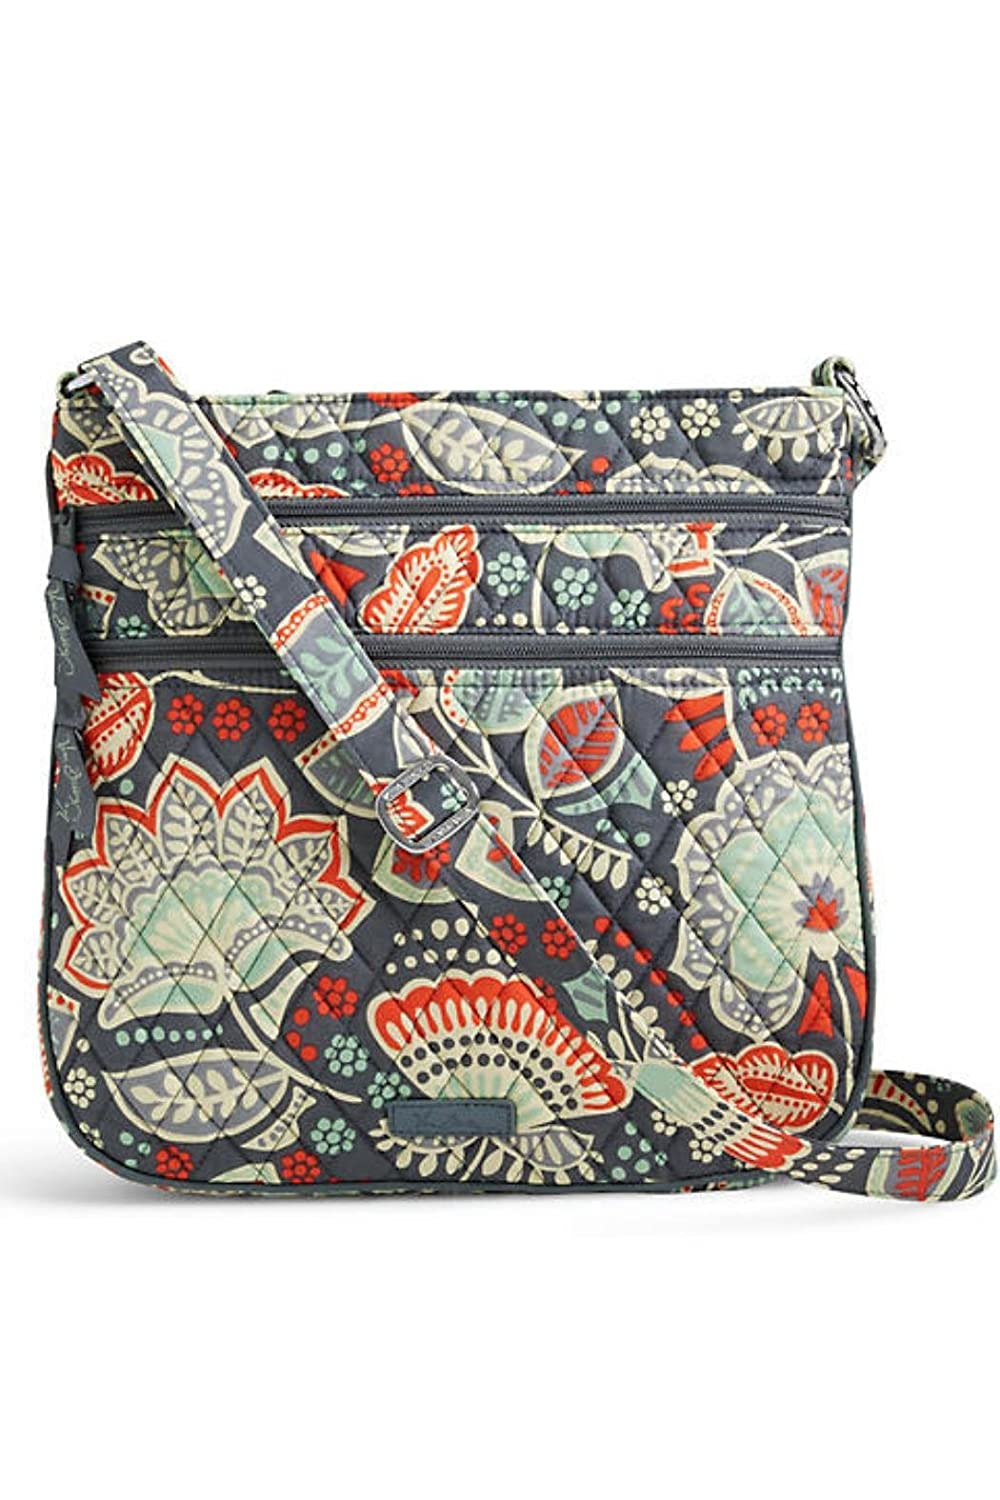 激安超安値 Vera Nomadic Bradley レディース B073QYVSR6 Interior Nomadic B073QYVSR6 Floral With Grey Interior Nomadic Floral With Grey Interior, コレカウ:66cec49c --- efichas.com.br